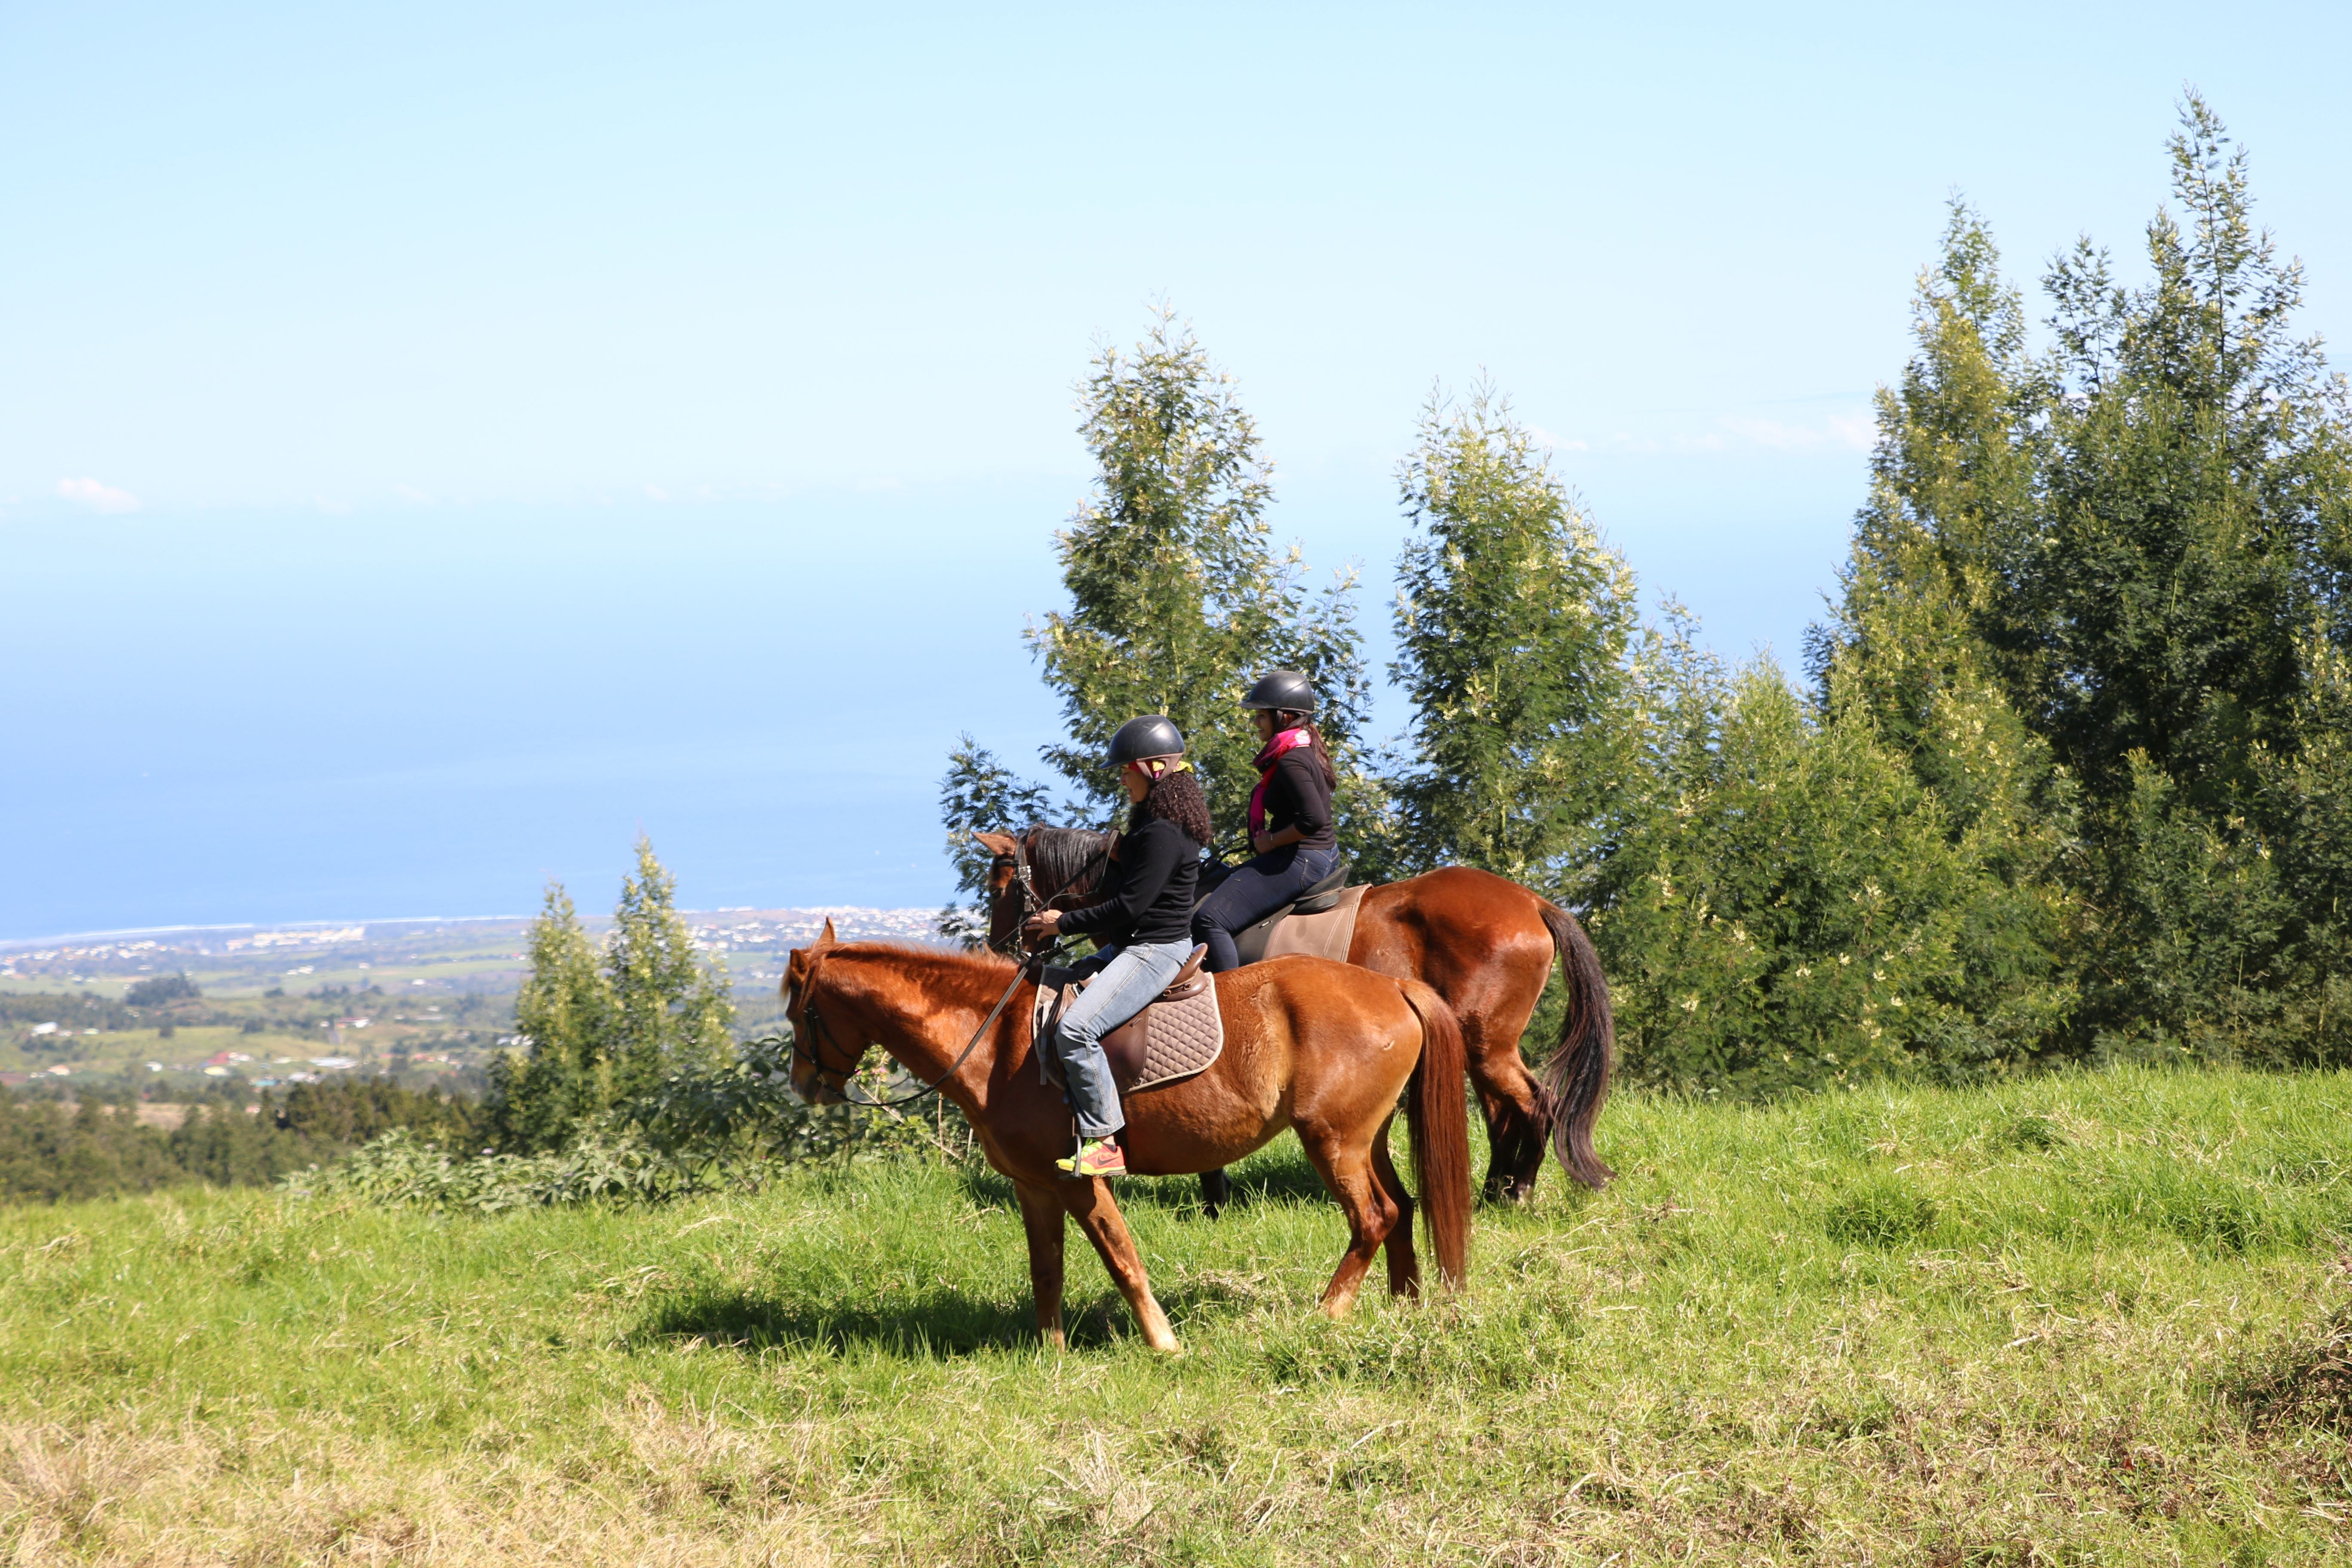 Zarlor relaxation on horseback in the west – The tranquillity in the West Highlands